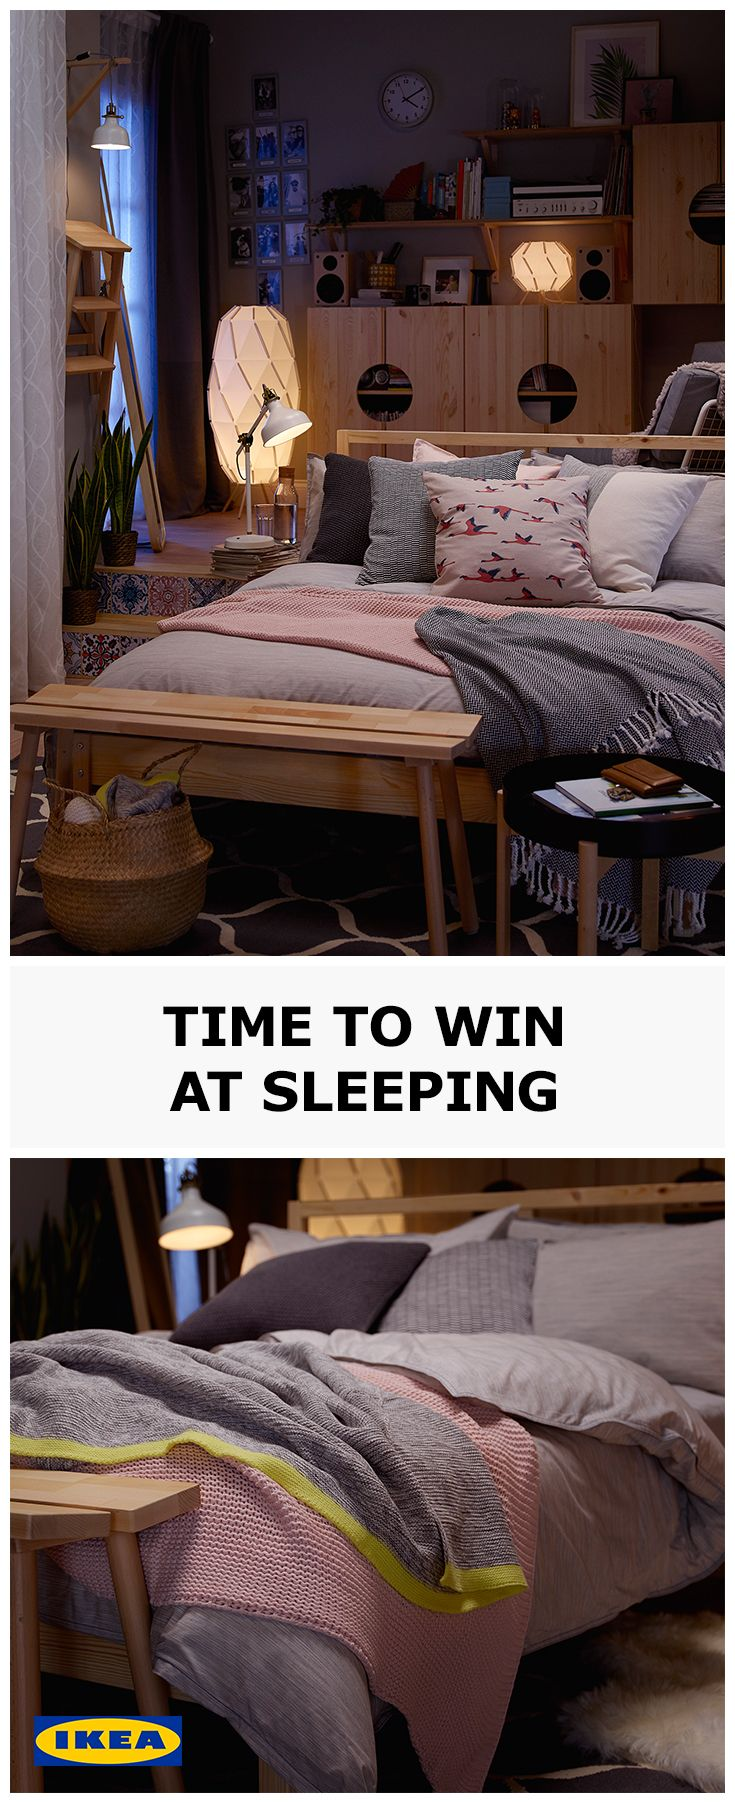 Whether it's finding the perfect pillow, or getting the tog on your new duvet just right, spending time personalising your bedroom to your needs is an important step towards winning at sleeping. Visit our IDEAS page for more tips.